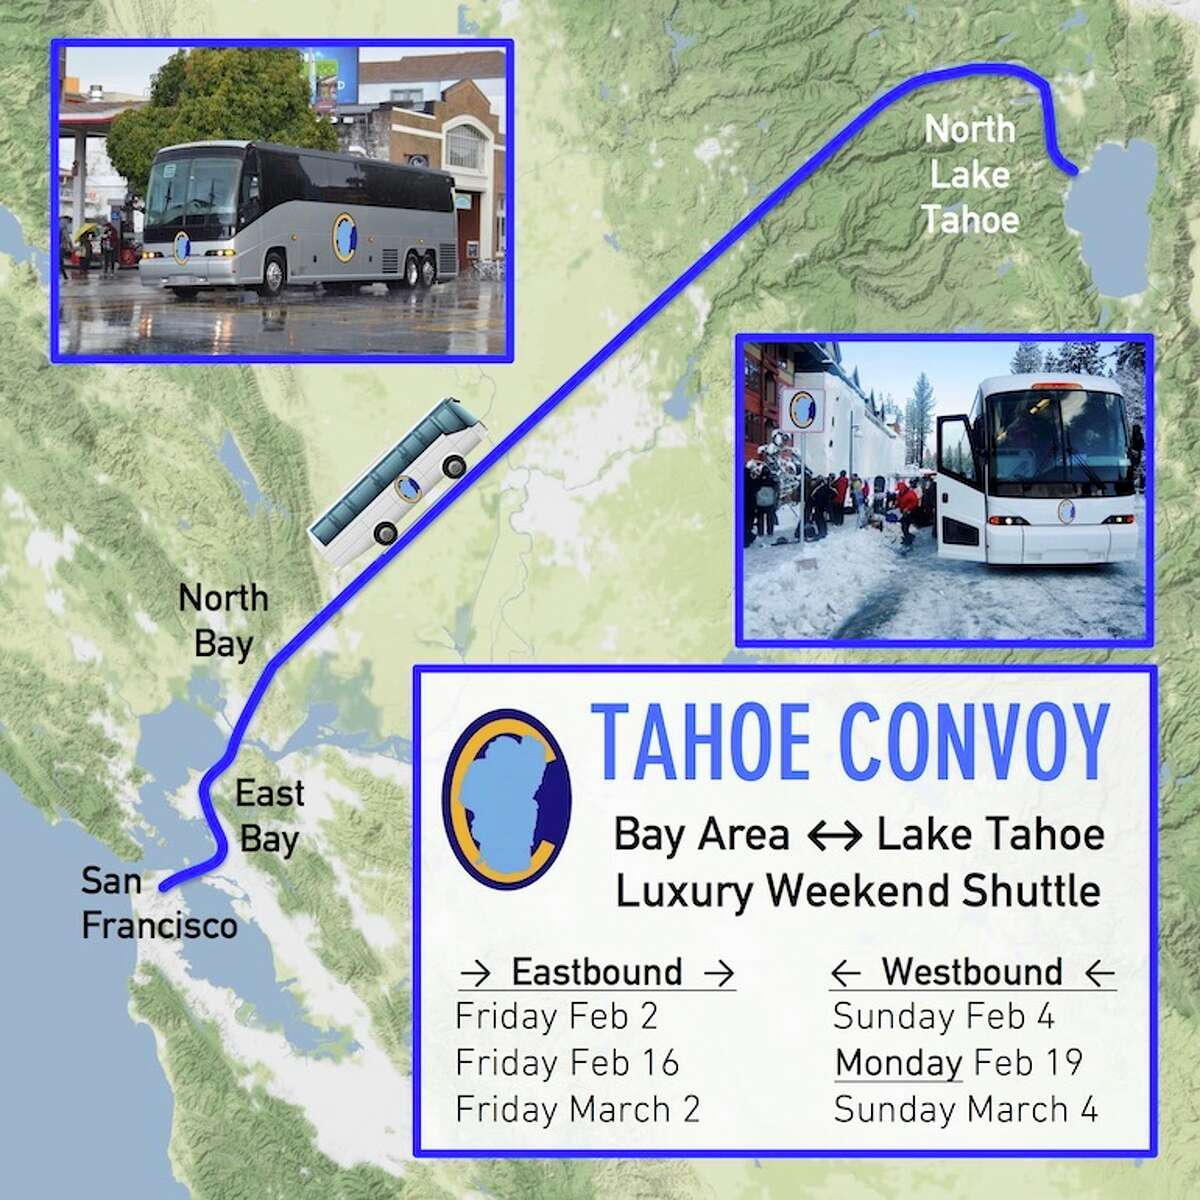 This map shows the route Tahoe Convoy will be taking during its initial launch.